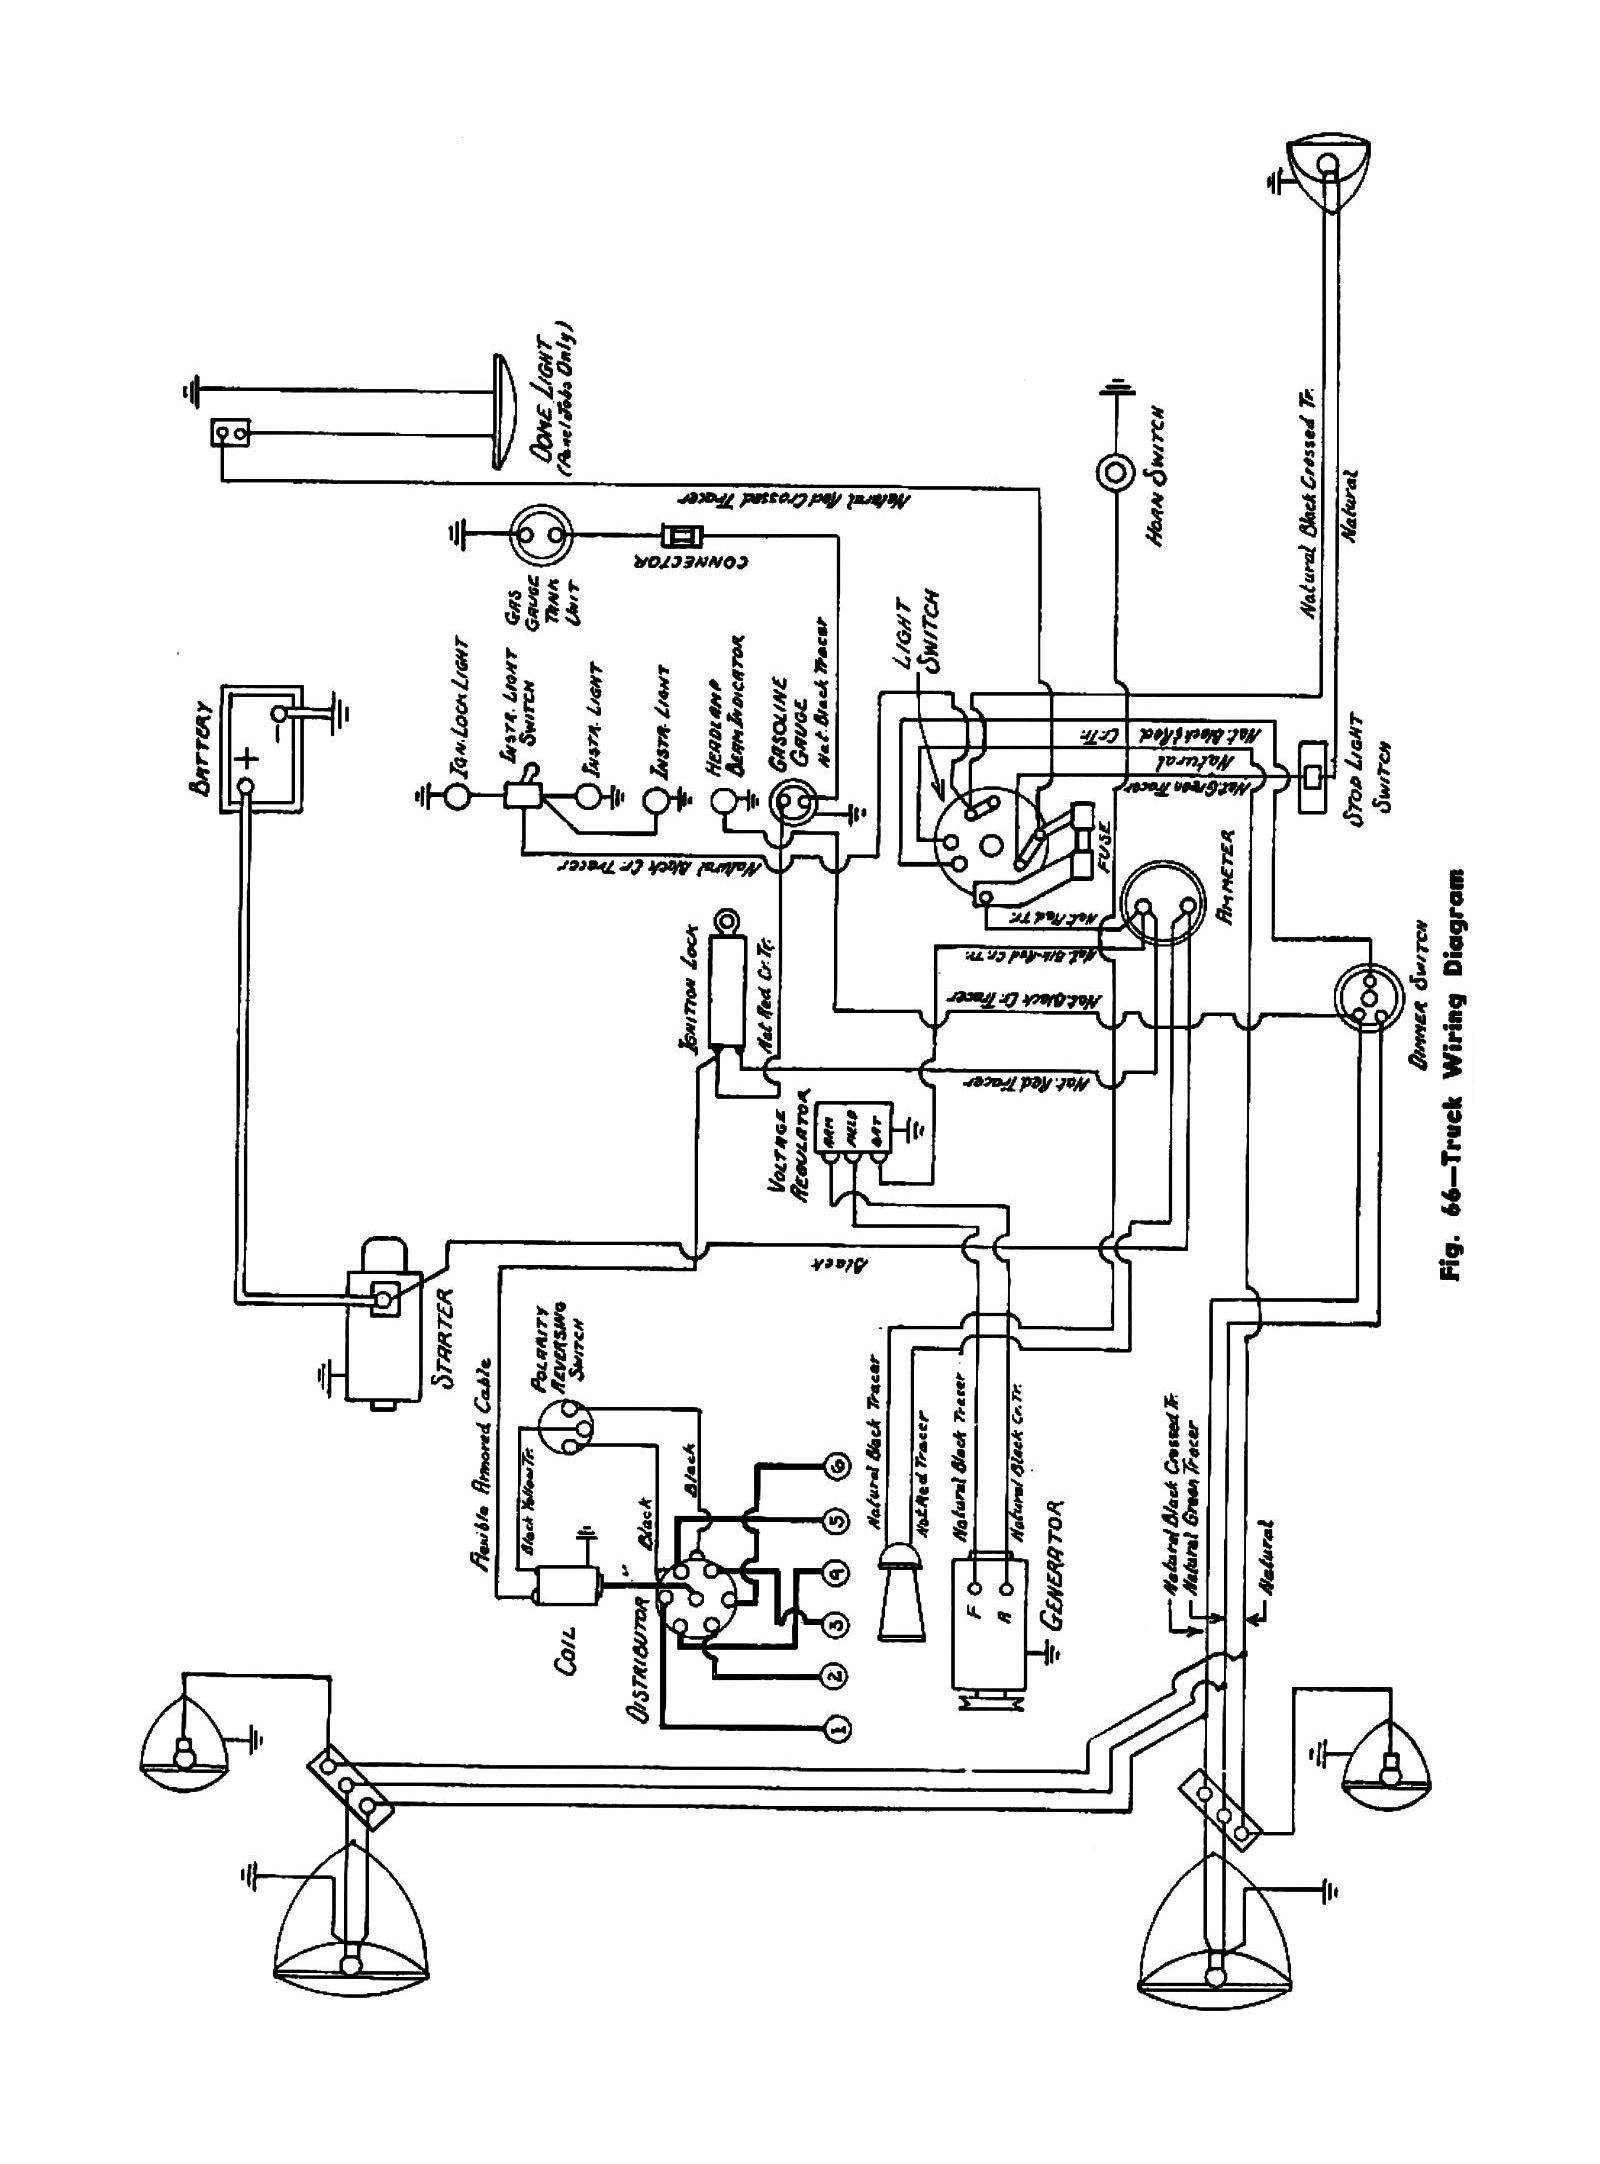 45truck chevy wiring diagrams simple chevy tbi wiring harness diagram at mifinder.co